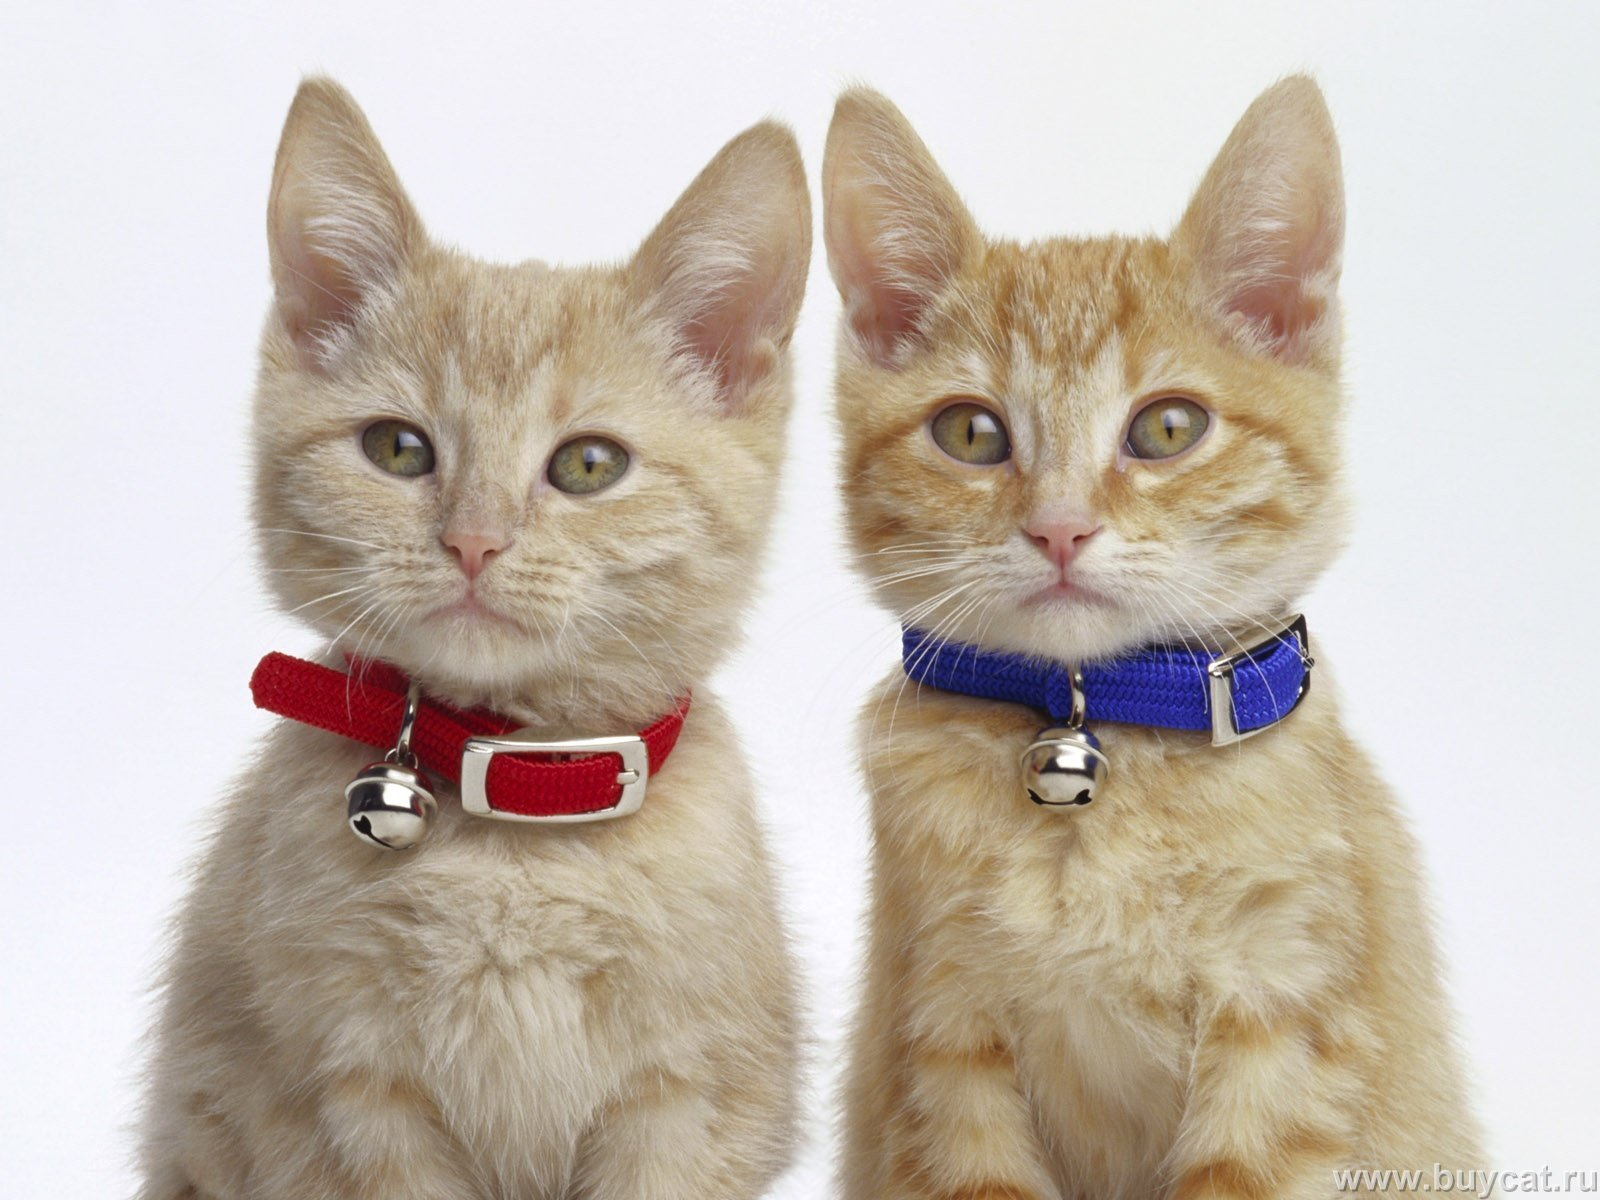 Funny Twin Cat Names